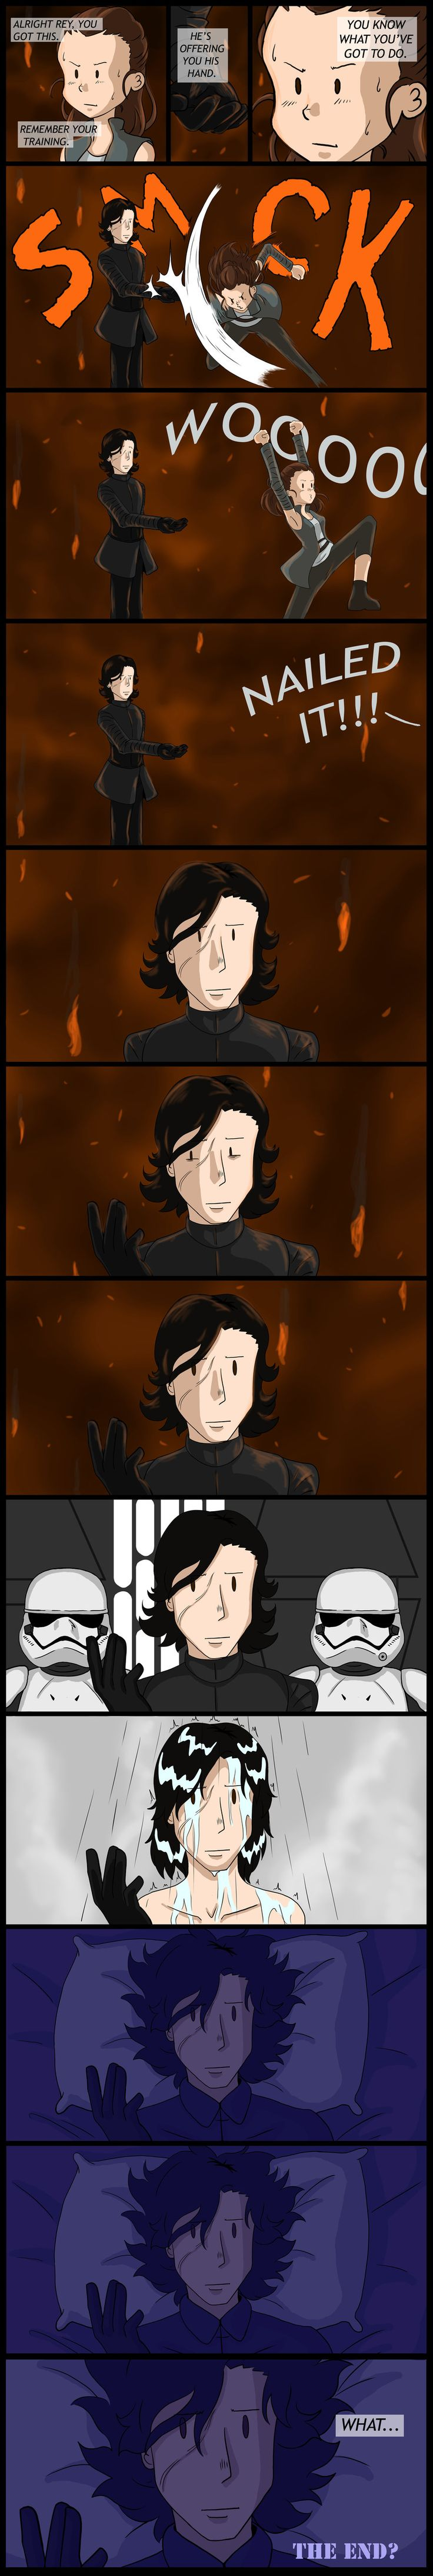 Star Wars The Last Jedi: What are hands for? by ShadowHellfire